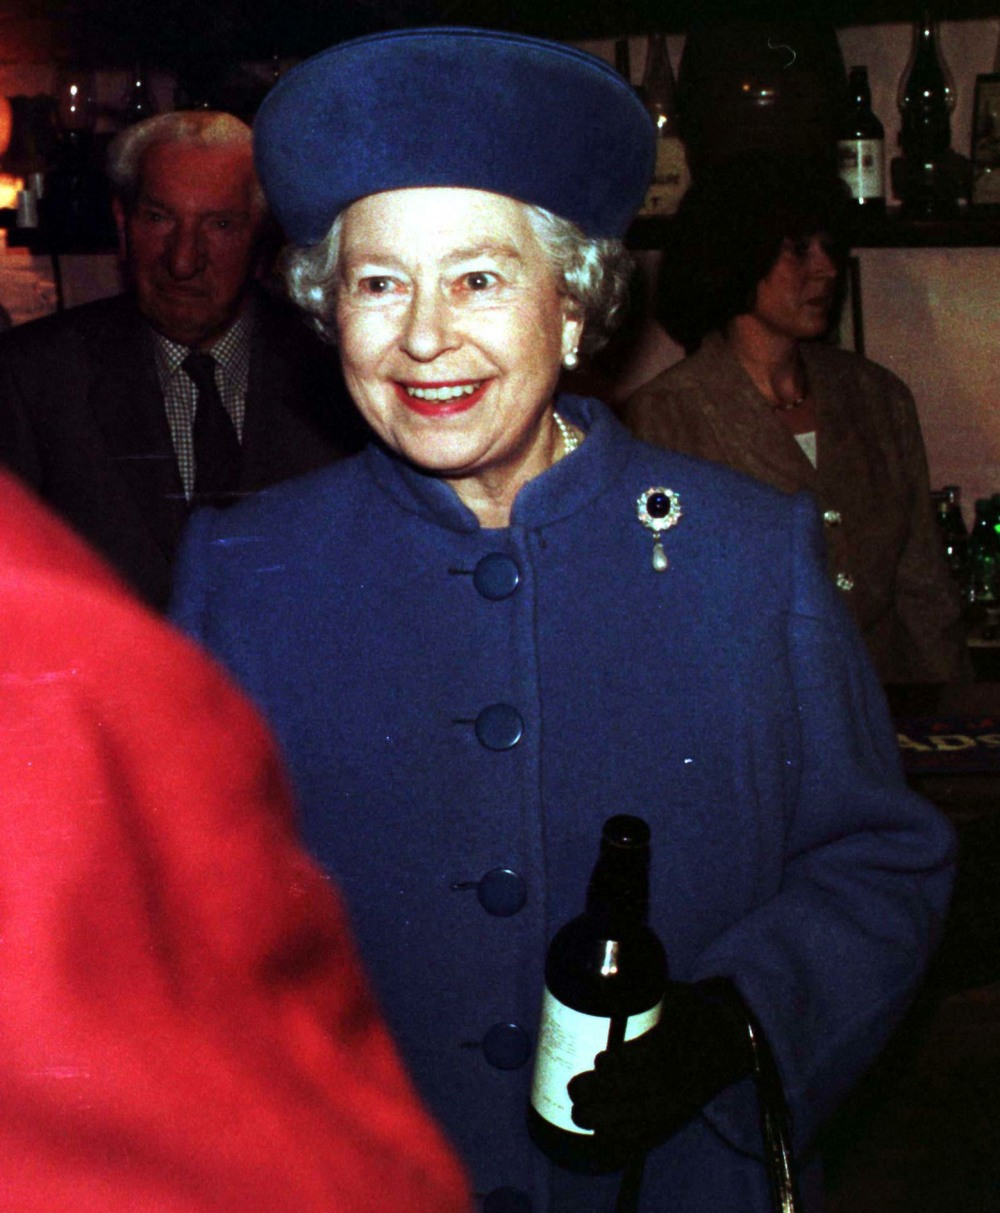 *NB: NO UK USE*HM QUEEN ELIZABETH IIHolding a bottle of beer which was presented to her by the proprietor of the Bridge Inn, Topsham, Devon during her visit.Bandphoto Agency PhotoB68 052338   27.03.199880